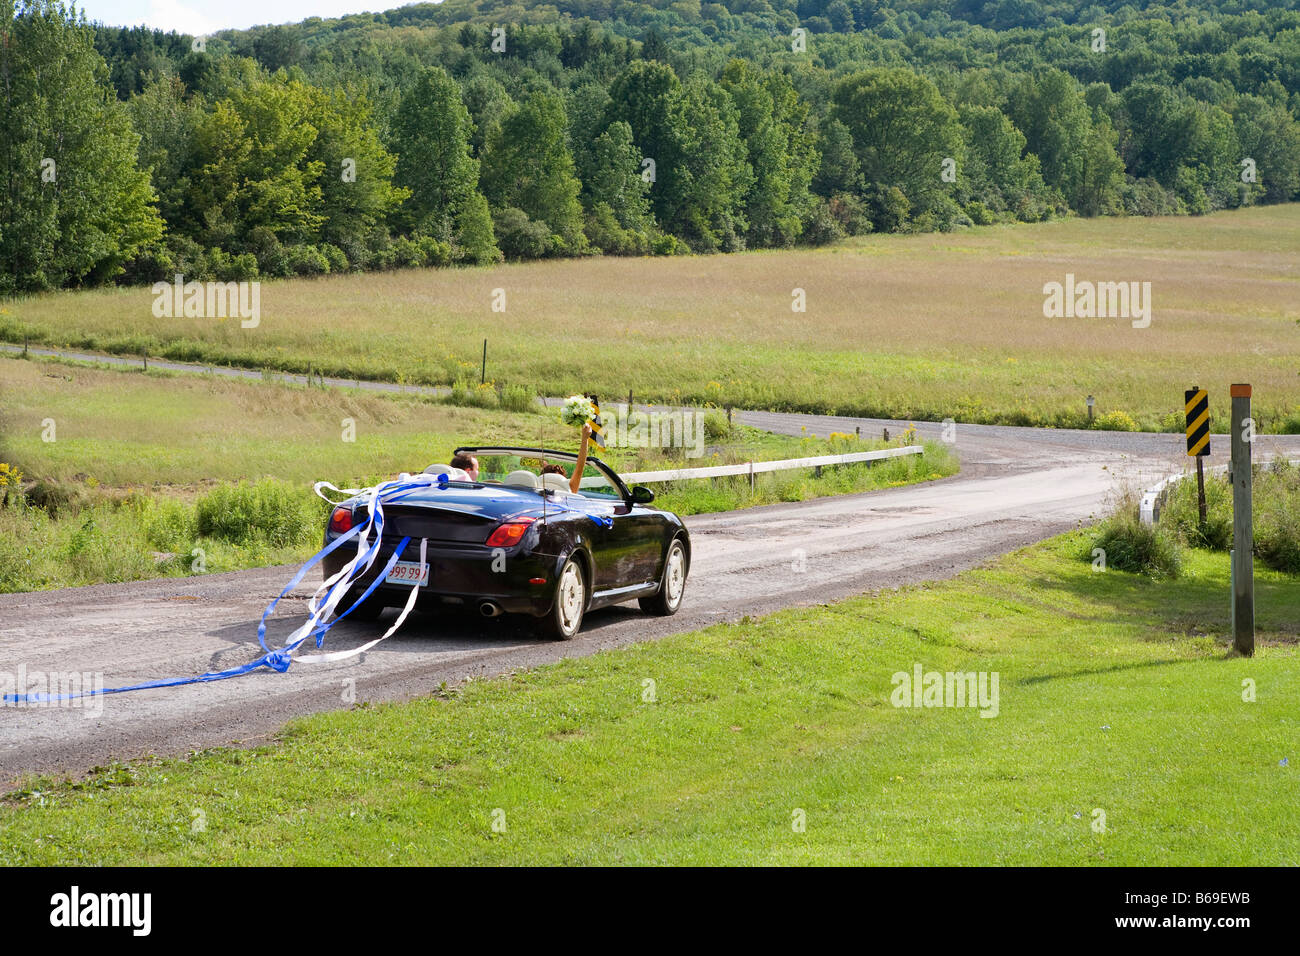 Newlywed couple in a car, East Meredith, New York State, USA - Stock Image